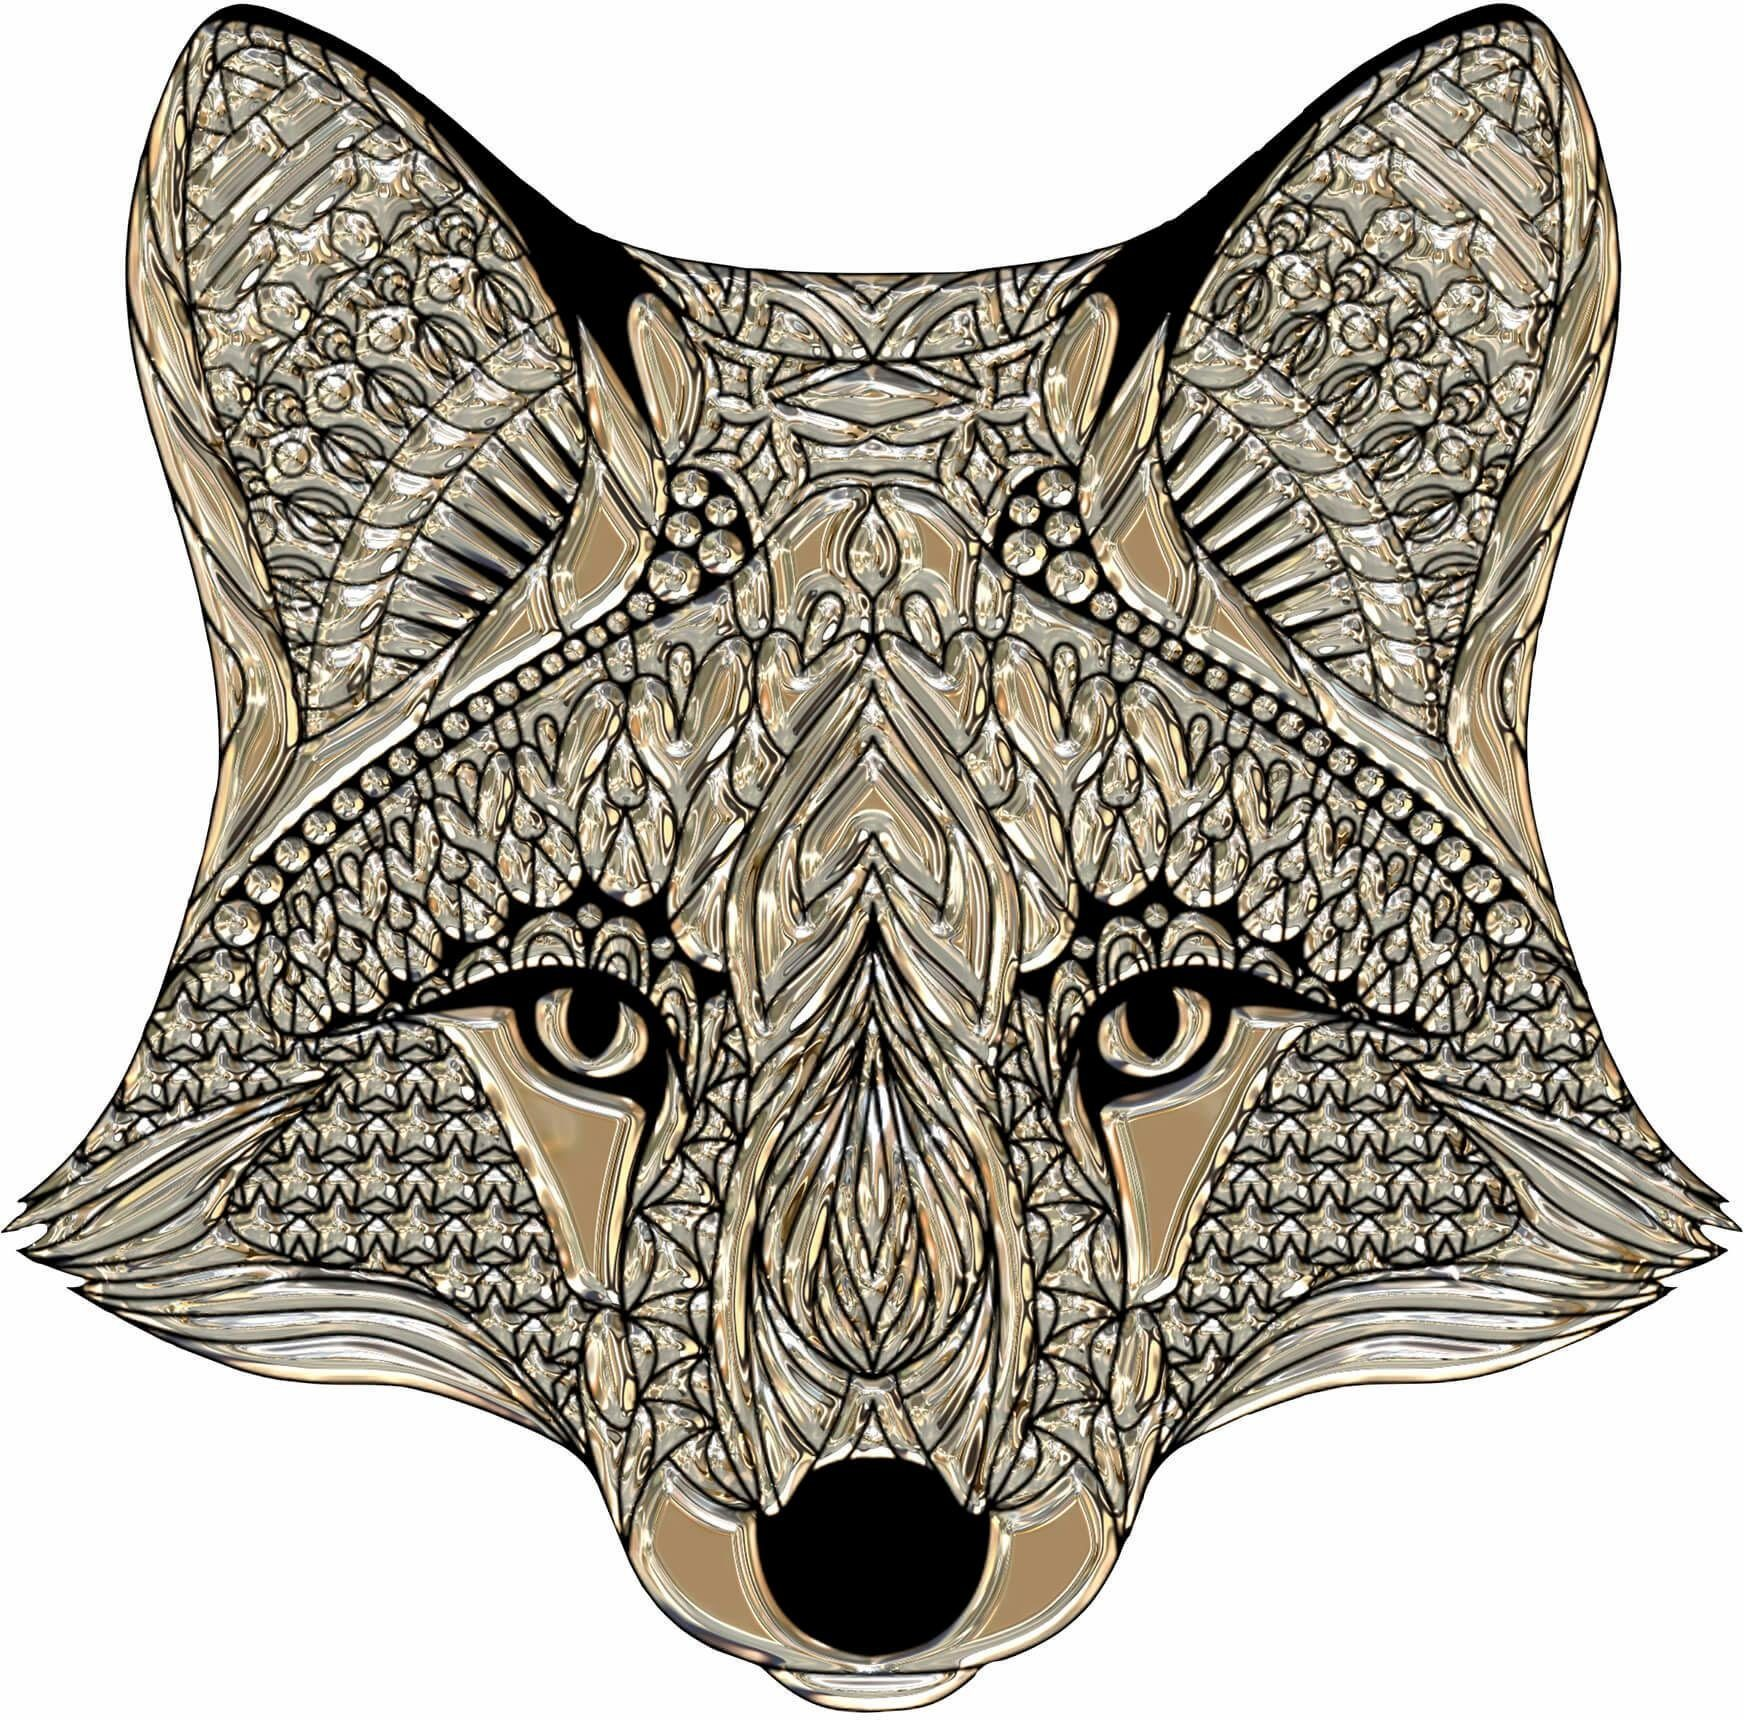 Wandtattoo »Metallic Fox«, 40/40 cm